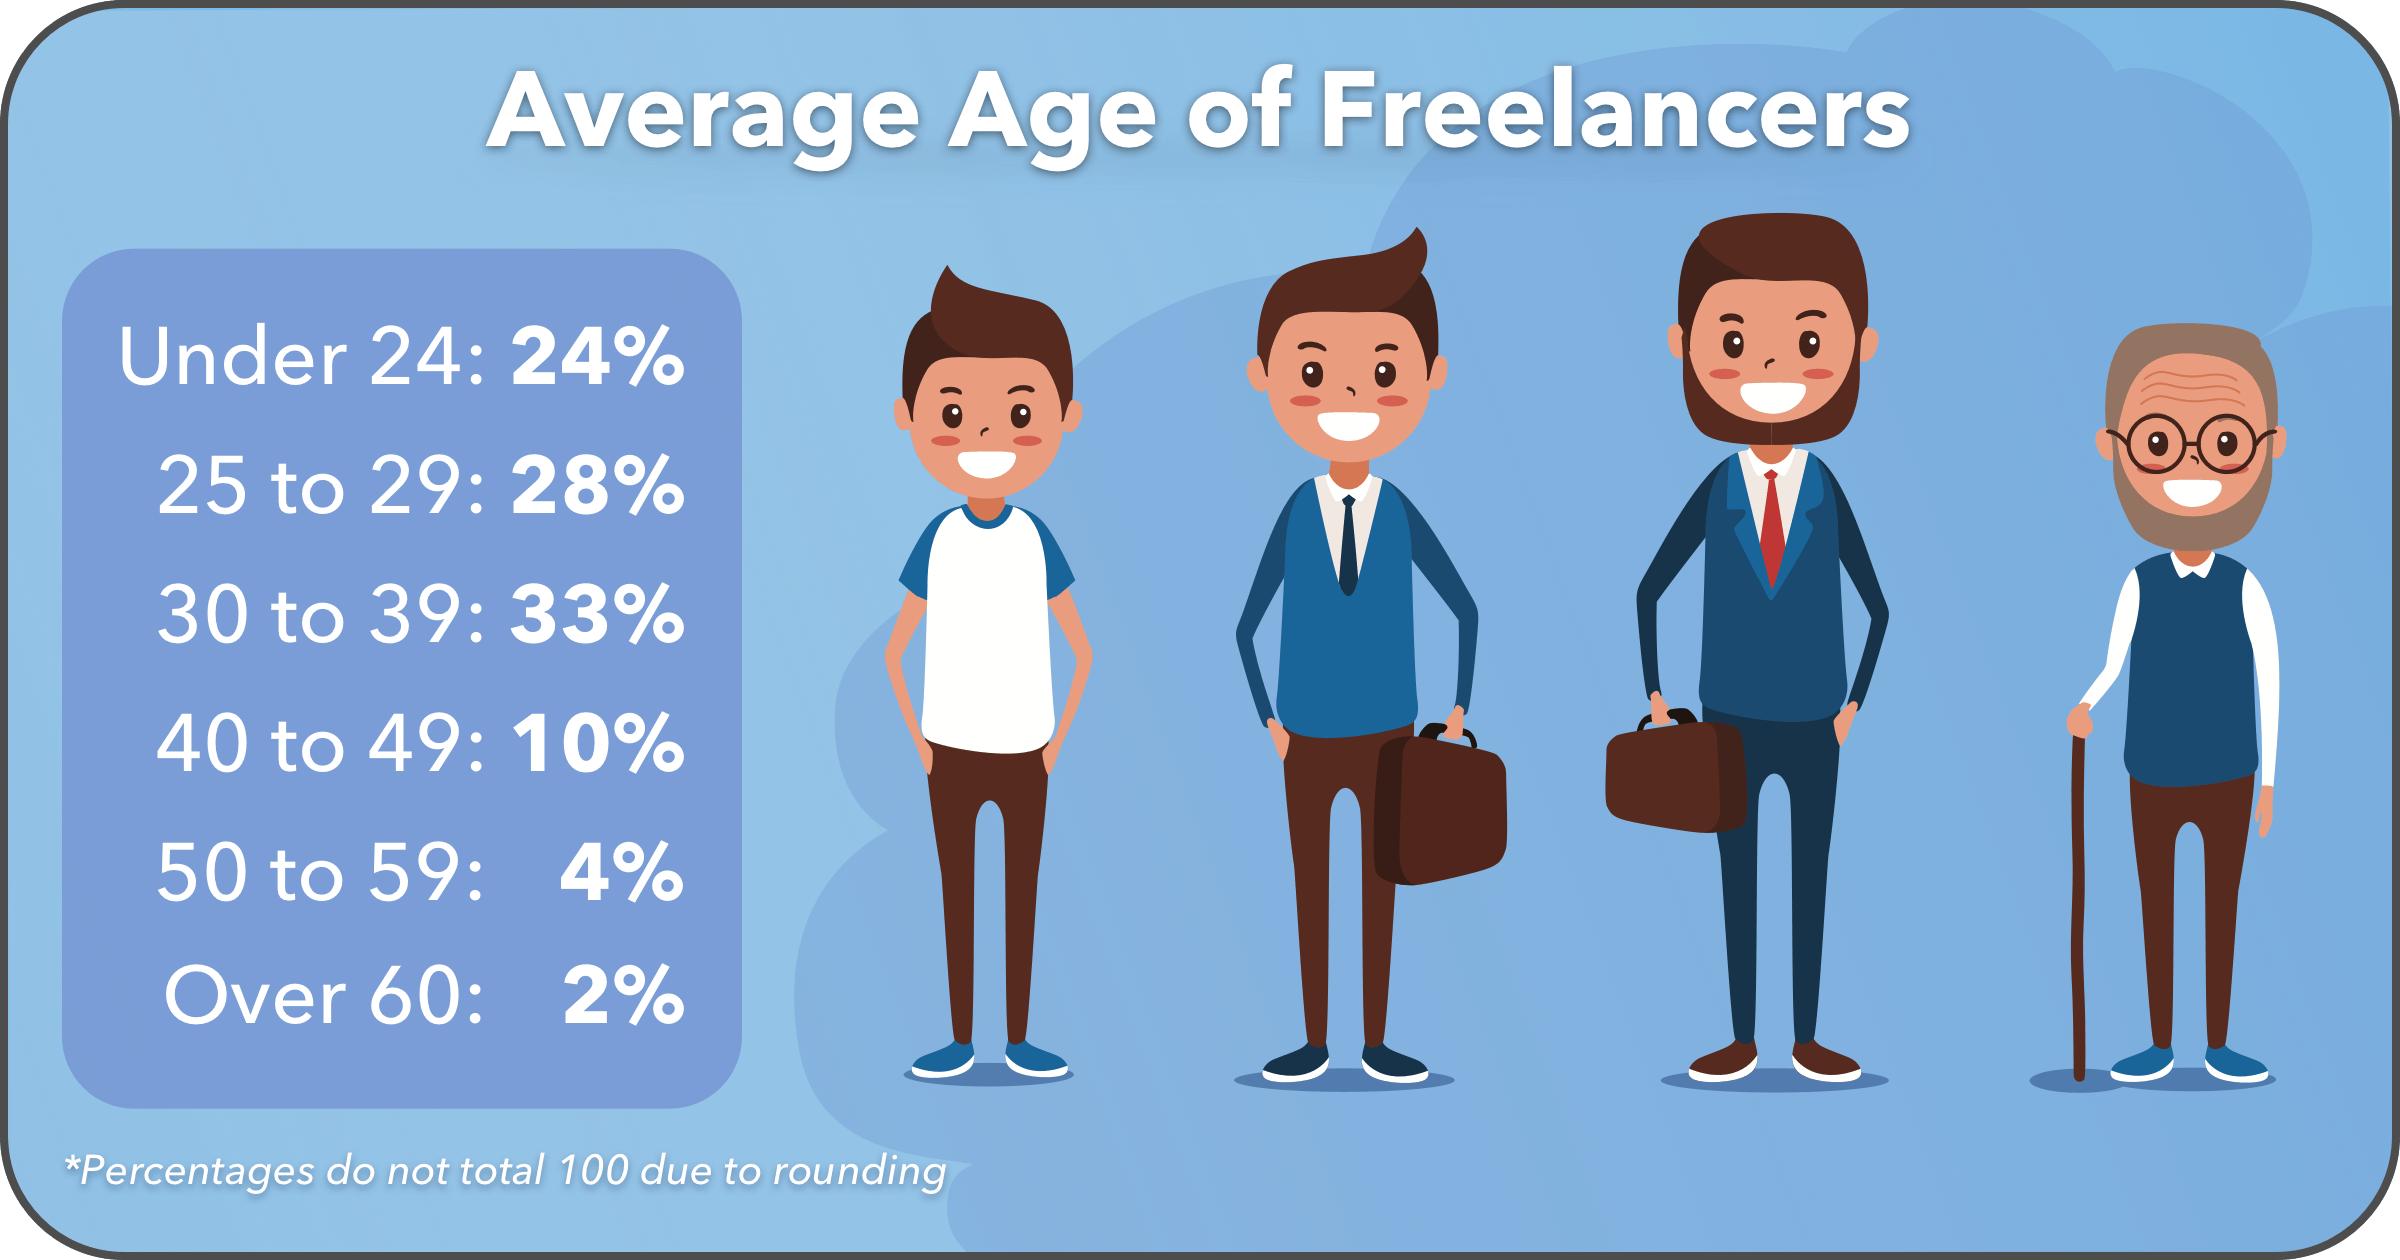 Most Freelancers Are Young